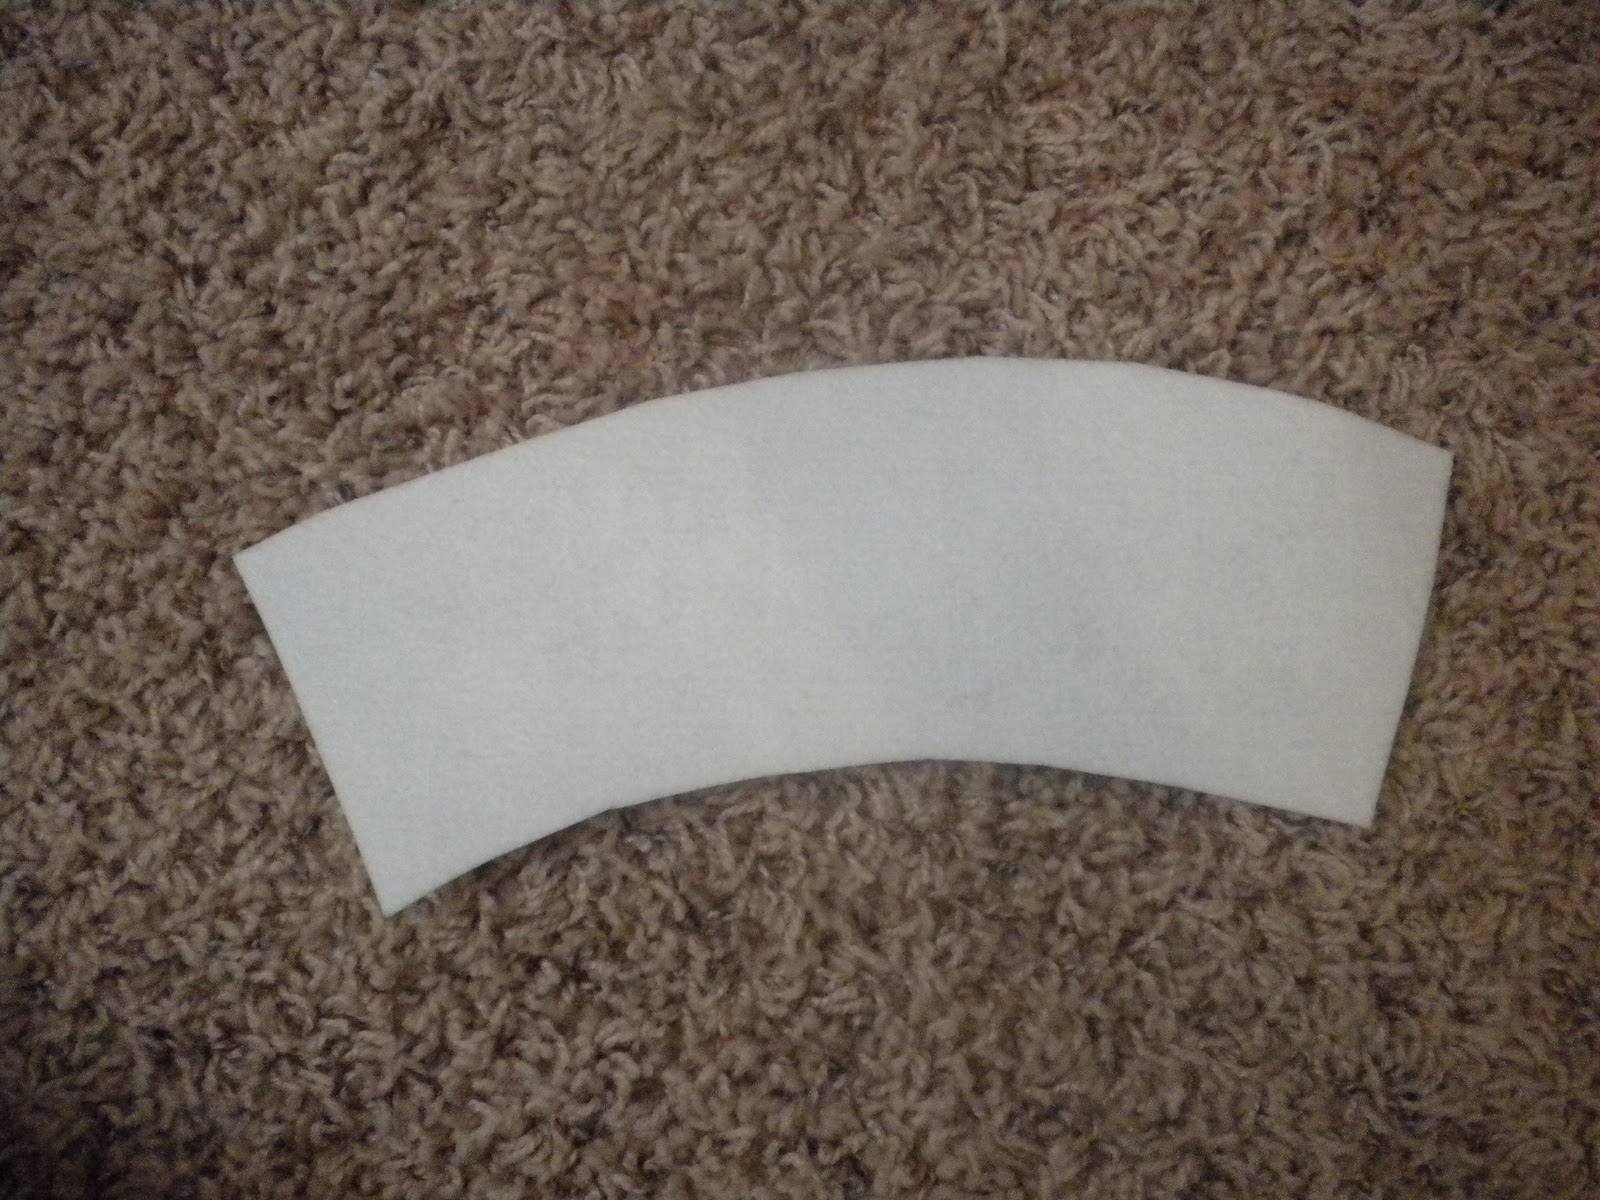 70e3602419a First we are going to make the cuff of the boot. This made using the Peltex  interfacing. You need two pieces that look like this